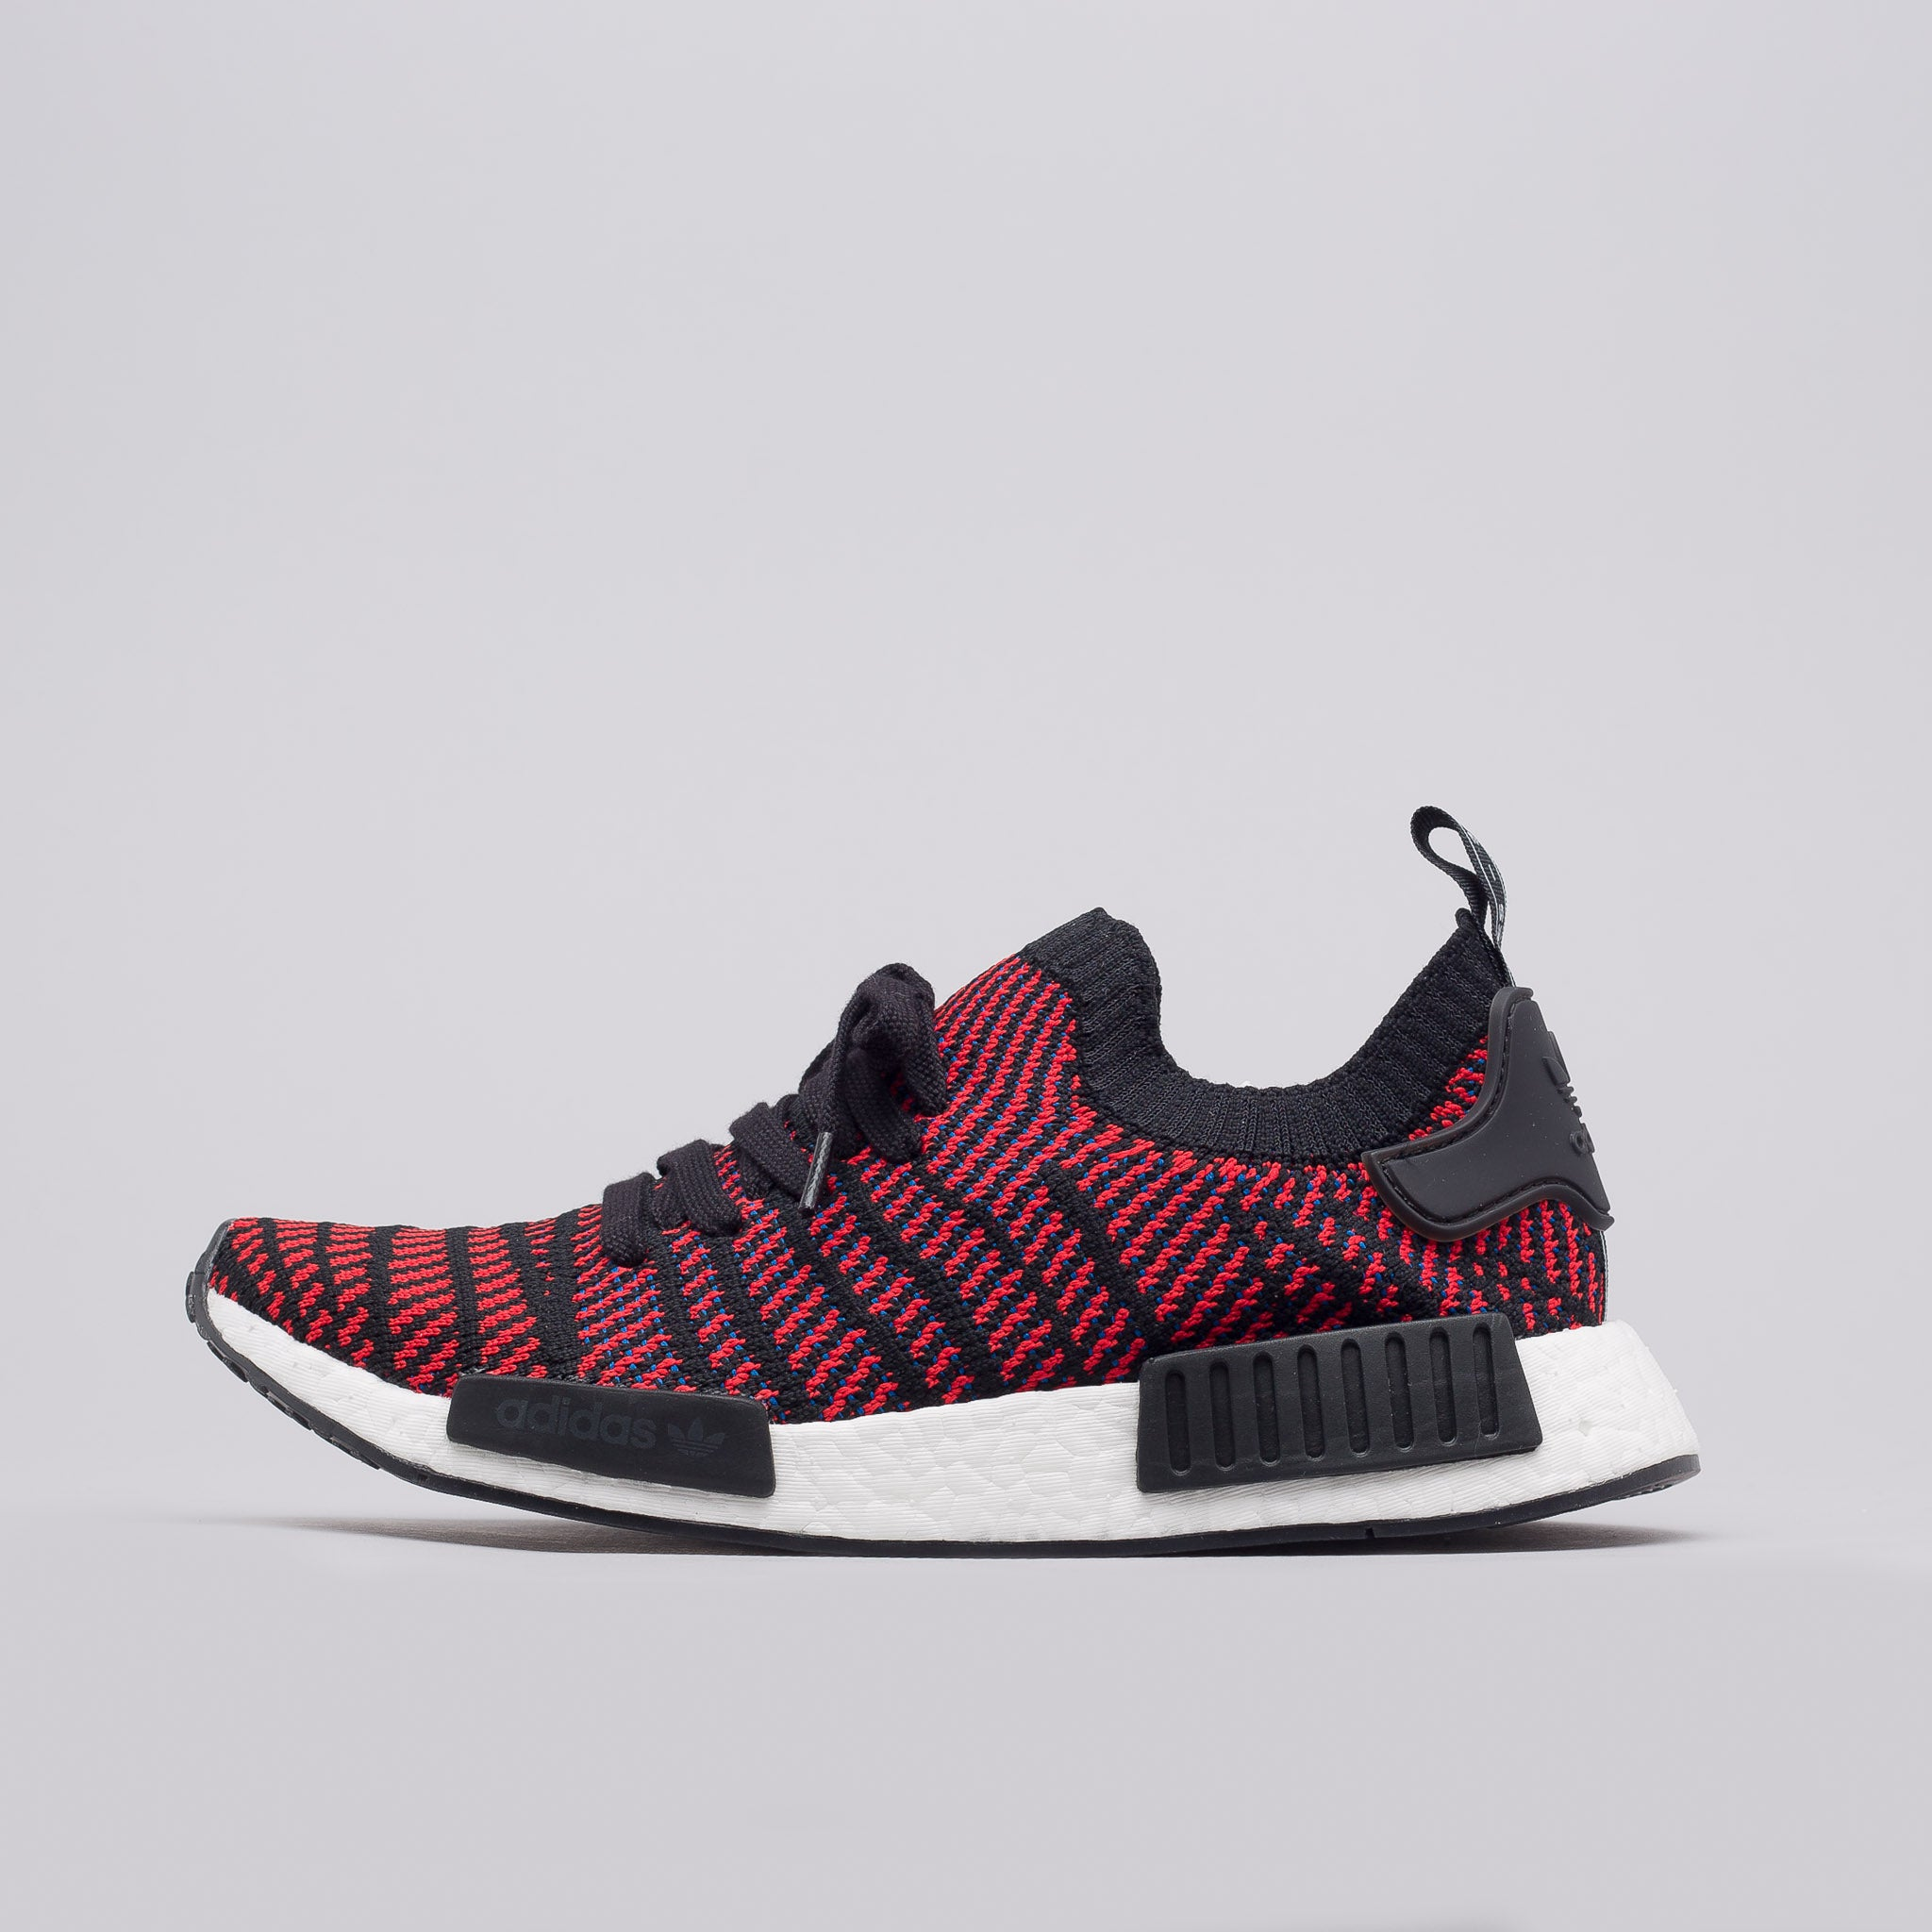 Adidas NMD R1 PK OG Original Black Red Blue White PrimeKnit